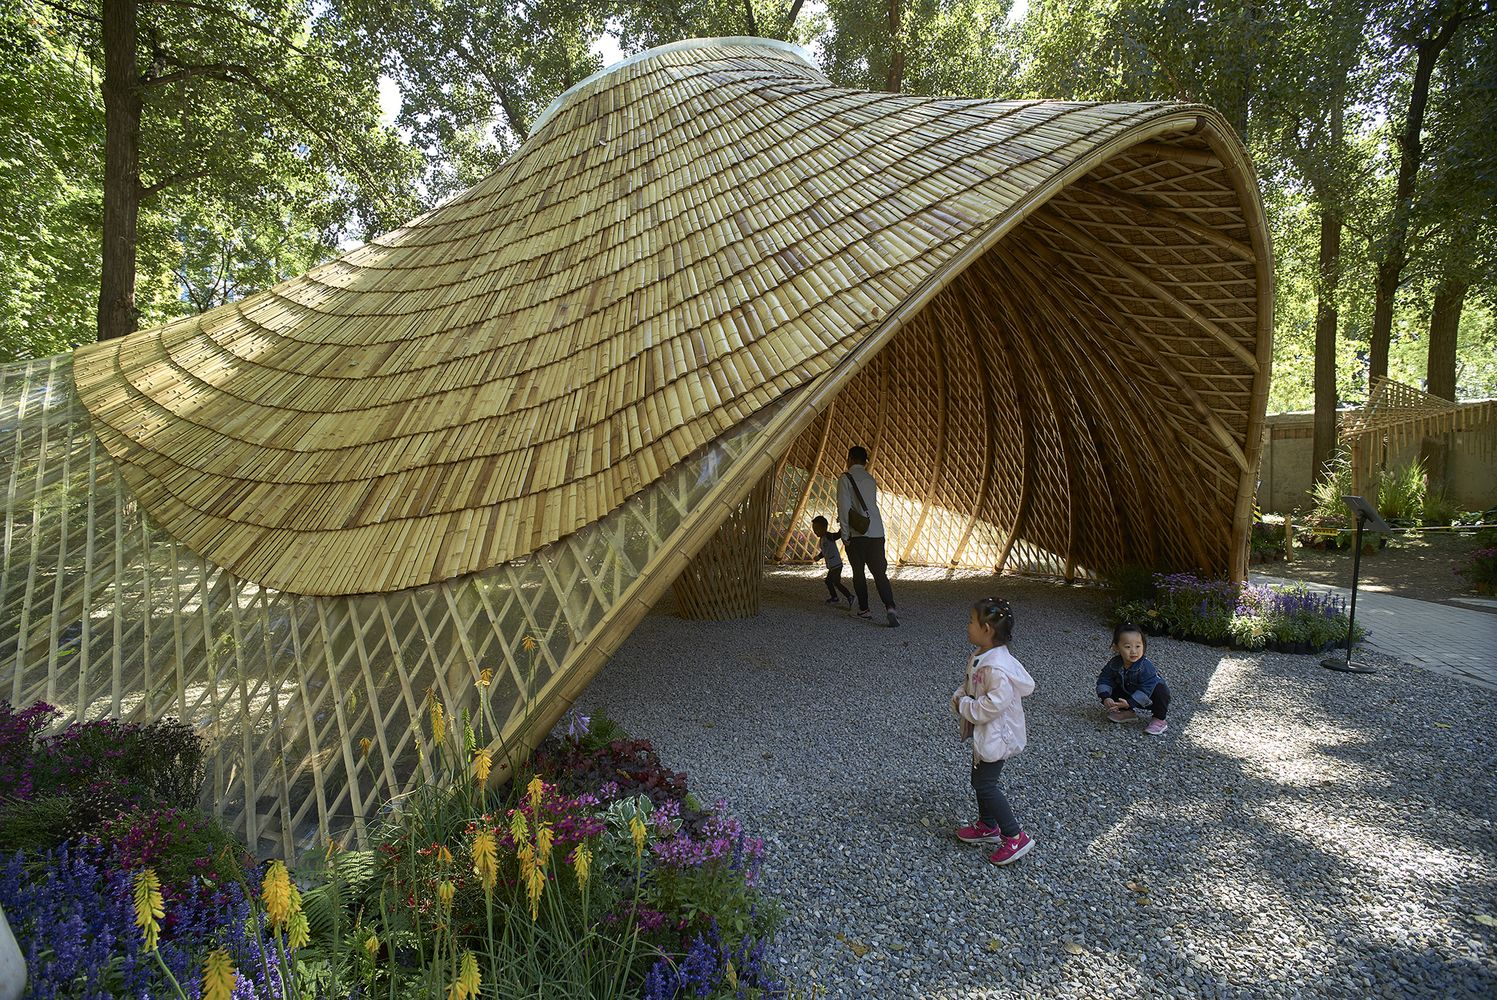 Gallery Of Swirling Cloud Bulletin Pavilion For Bjfu Garden